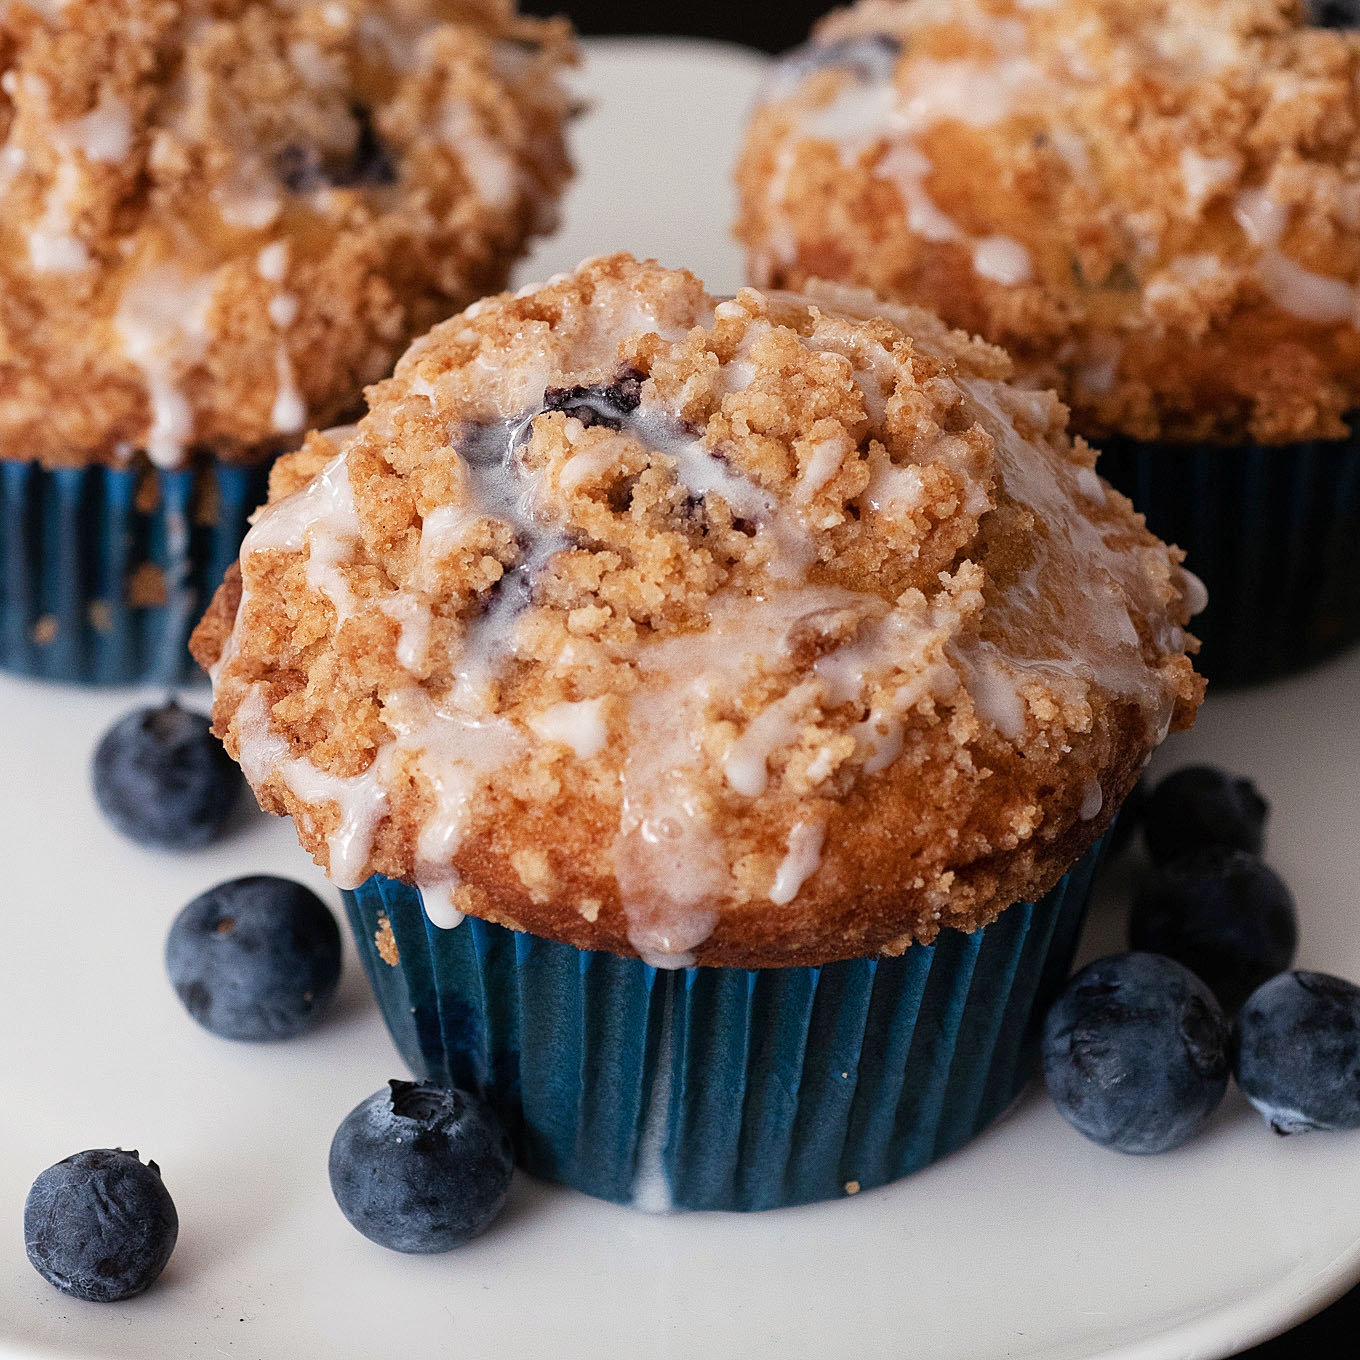 Three blueberry buttermilk muffins on a white serving stand alongside fresh blueberries